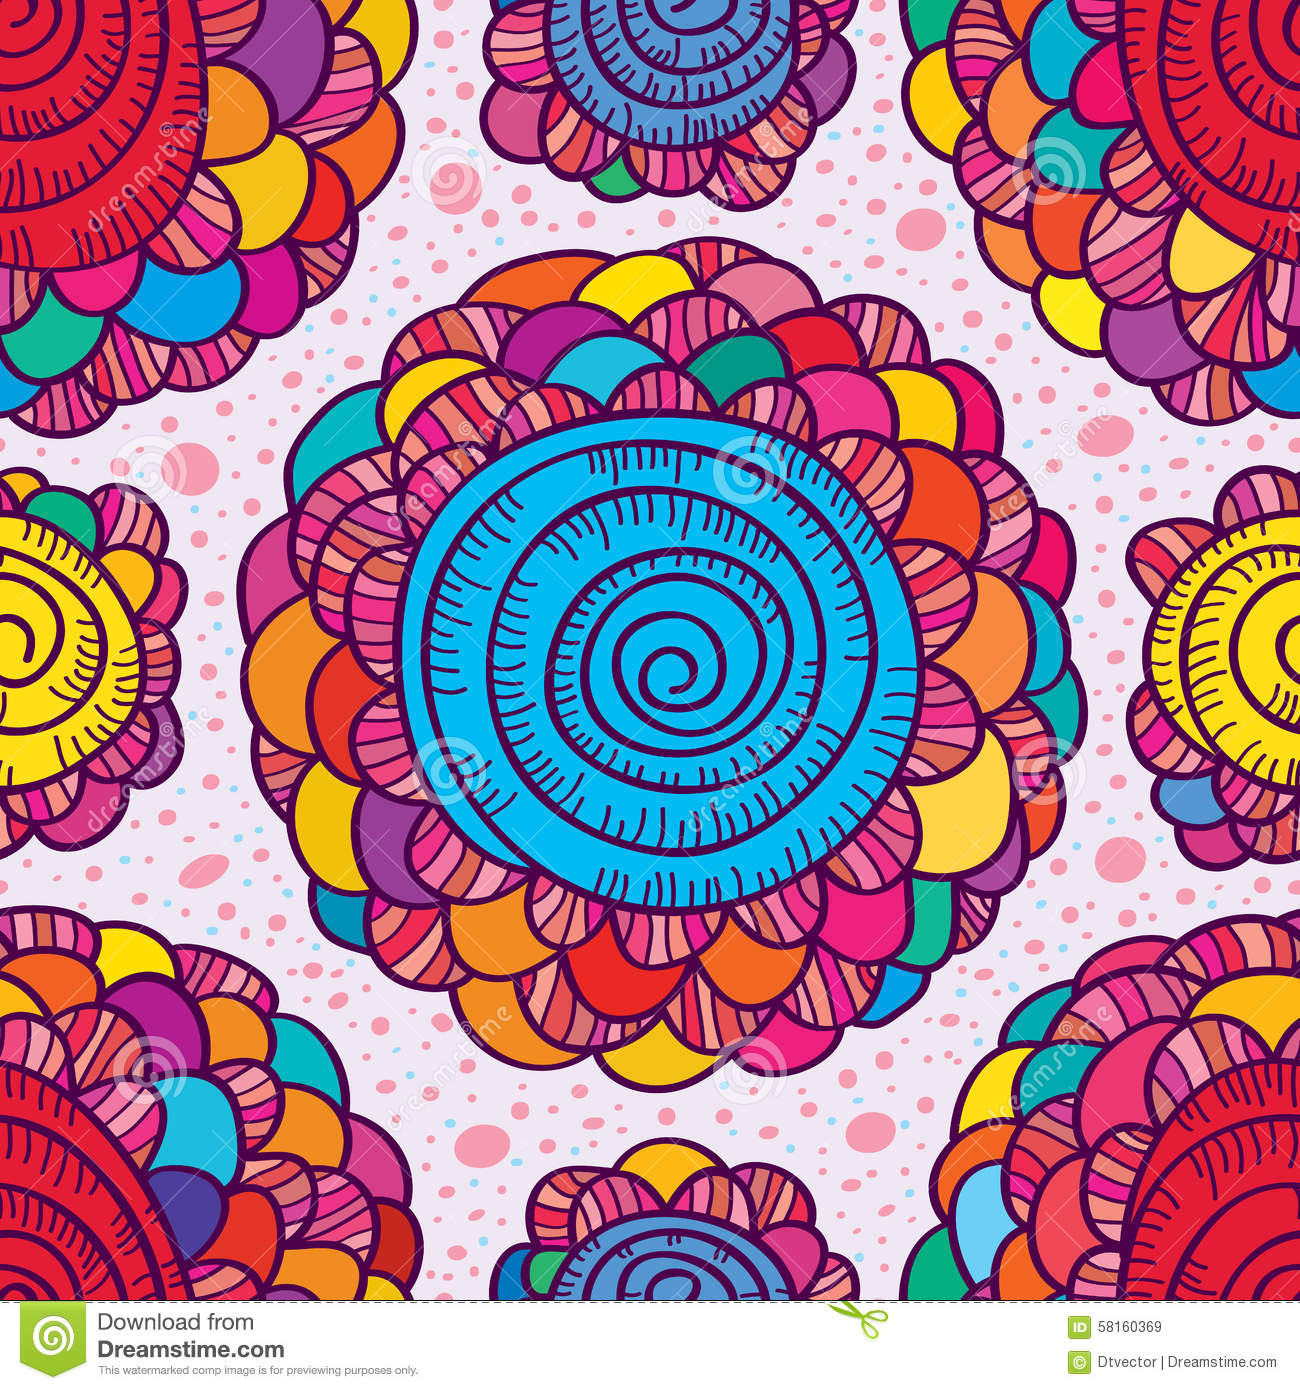 Colorful Designs And Patterns To Draw | www.pixshark.com ...